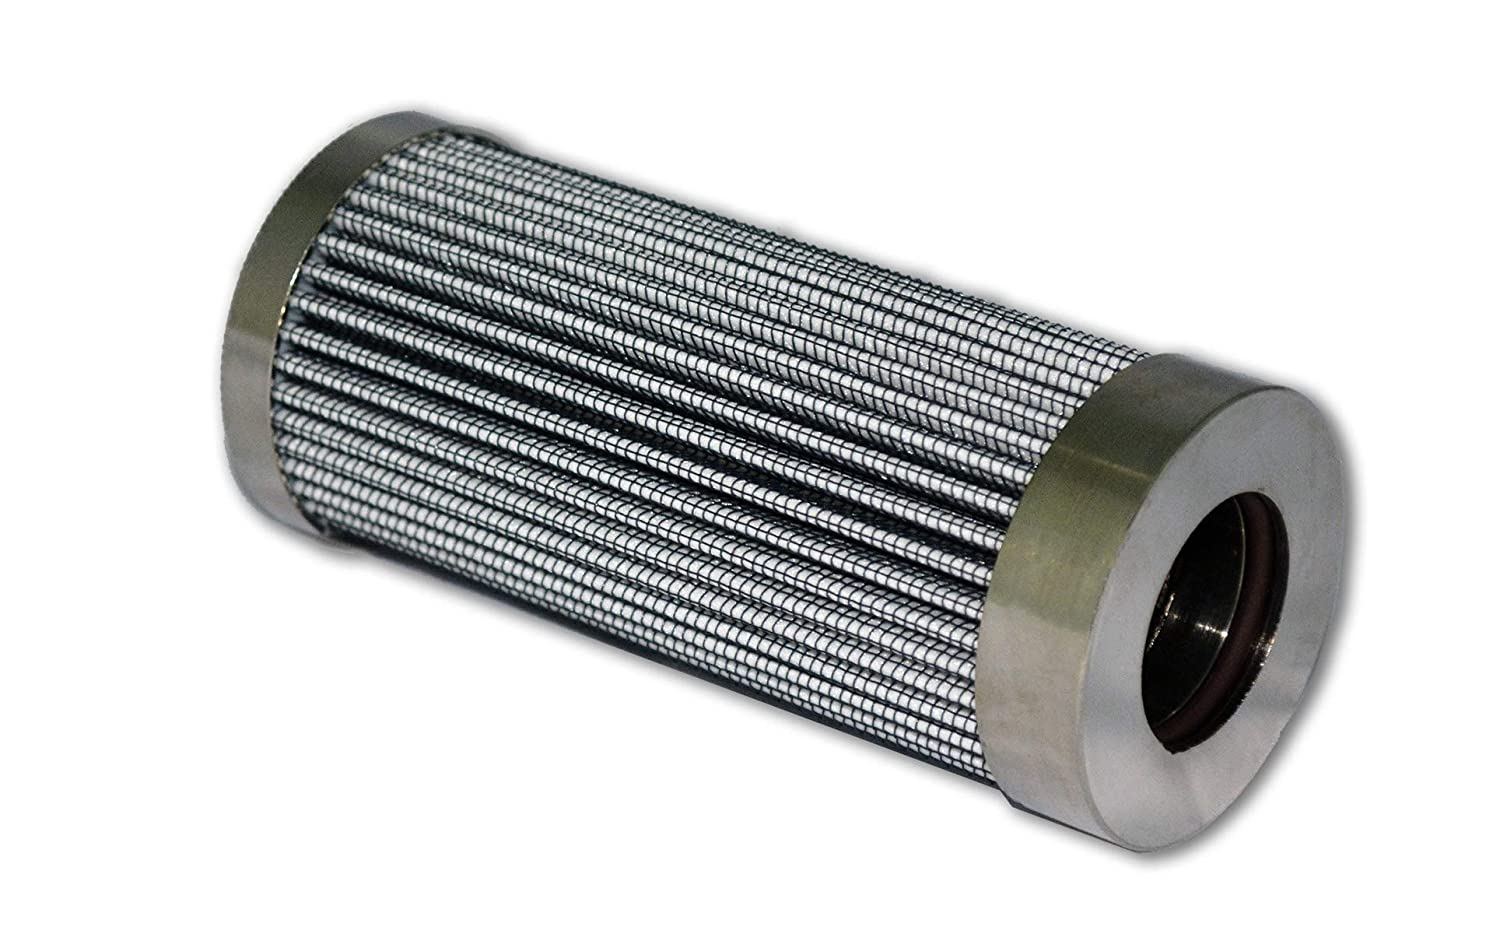 DOMANGE CDHP30A10BN Heavy Duty Replacement Hydraulic Filter Element from Big Filter